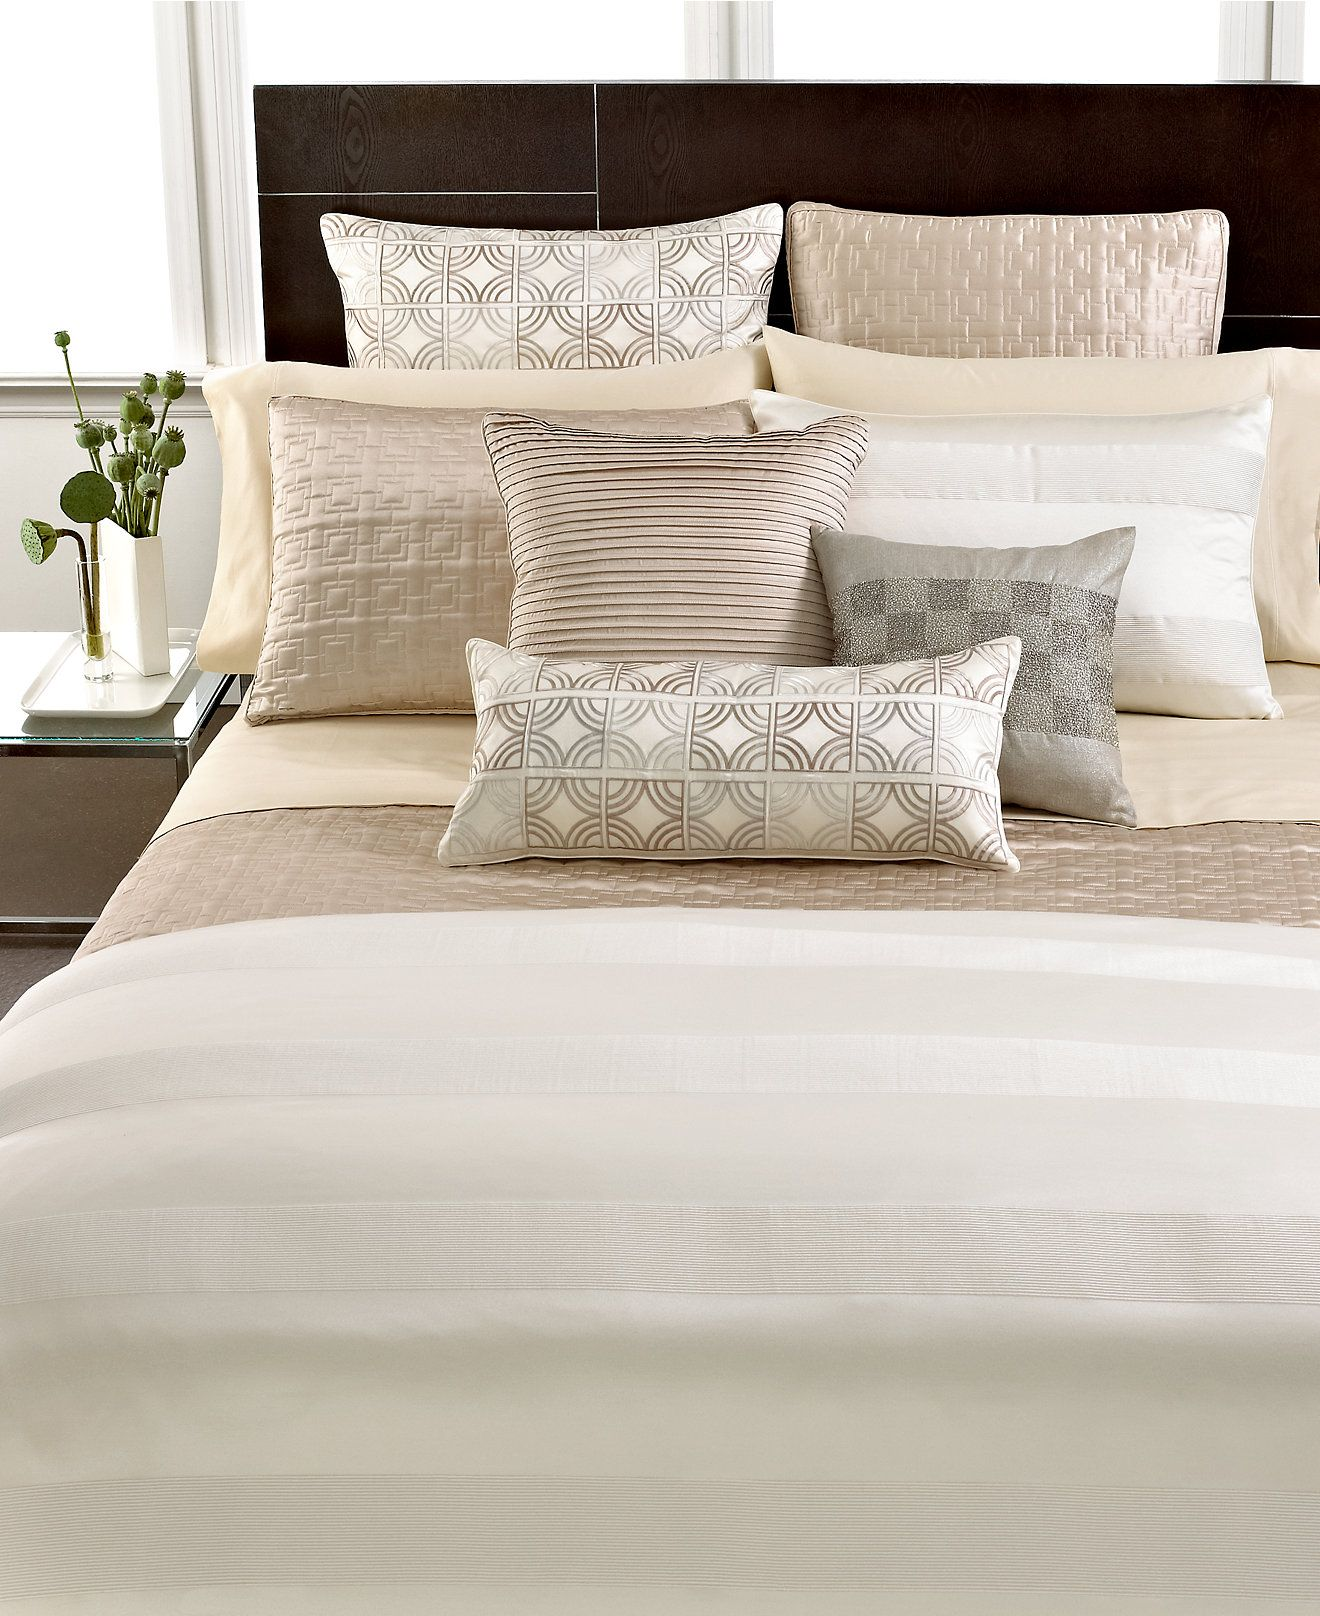 hotel collection woven cord bedding collection - bedding